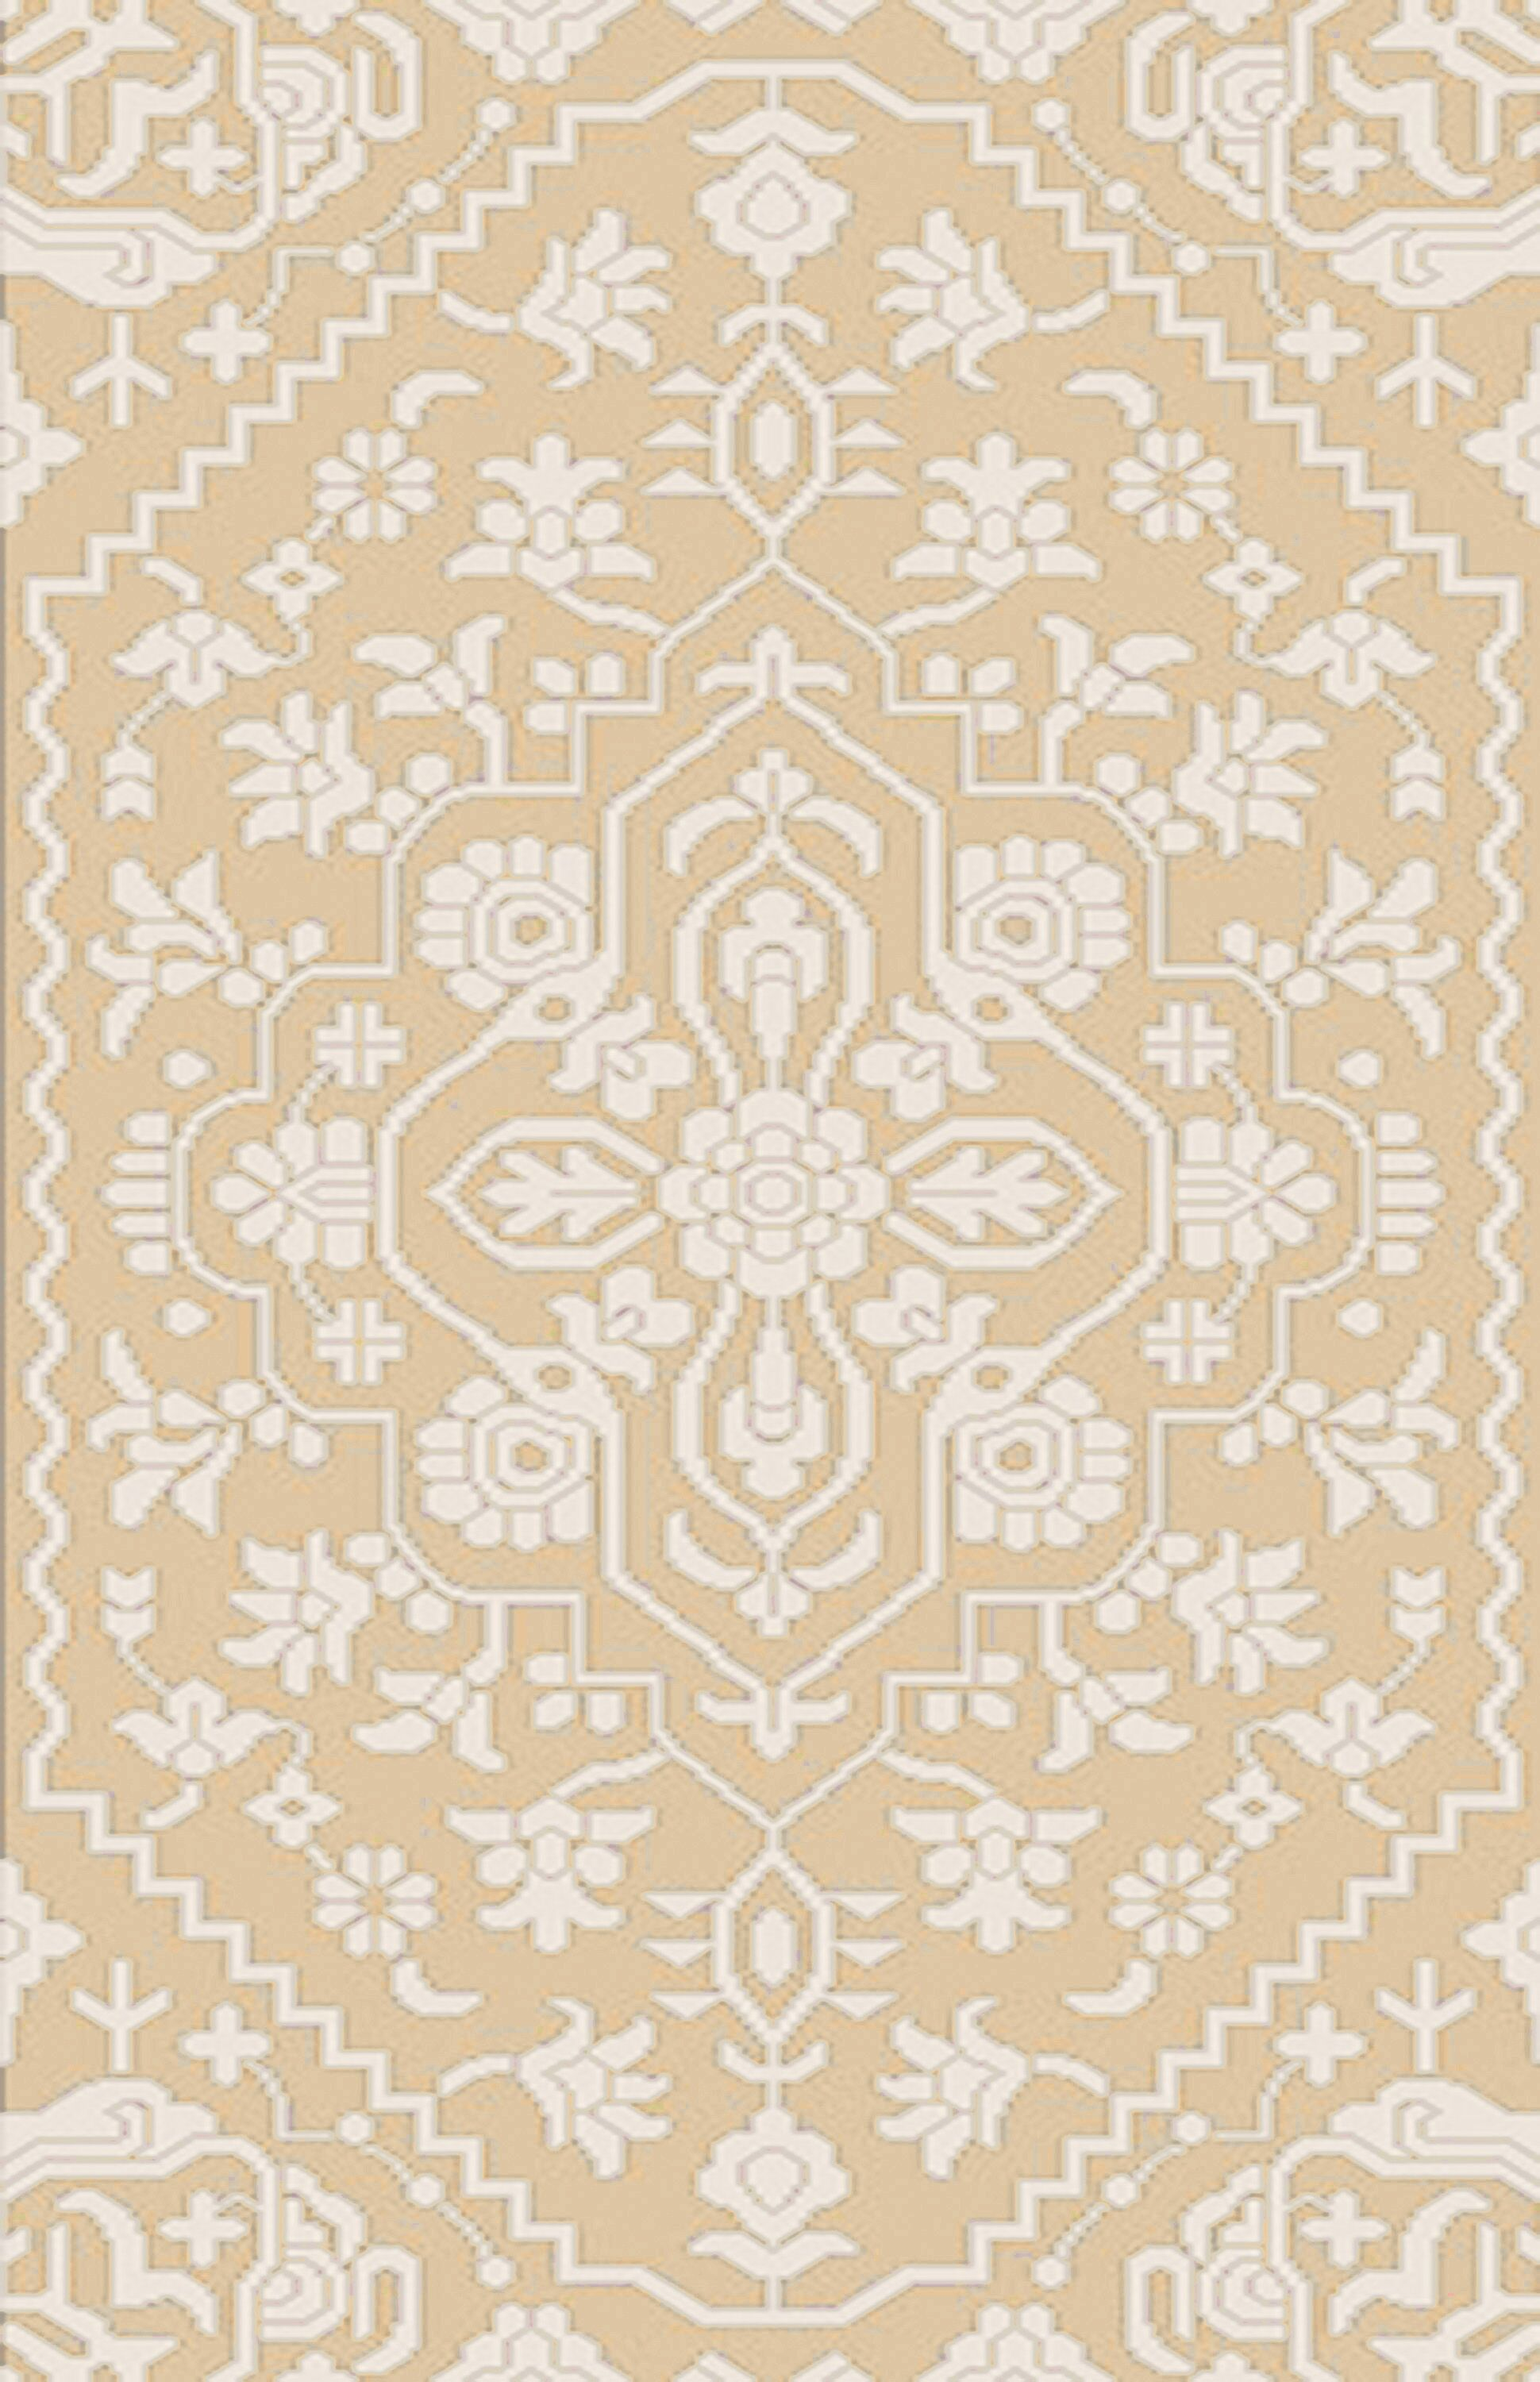 L'Ermitage Hand-Knotted Beige Area Rug Rug Size: Rectangle 10' x 14'